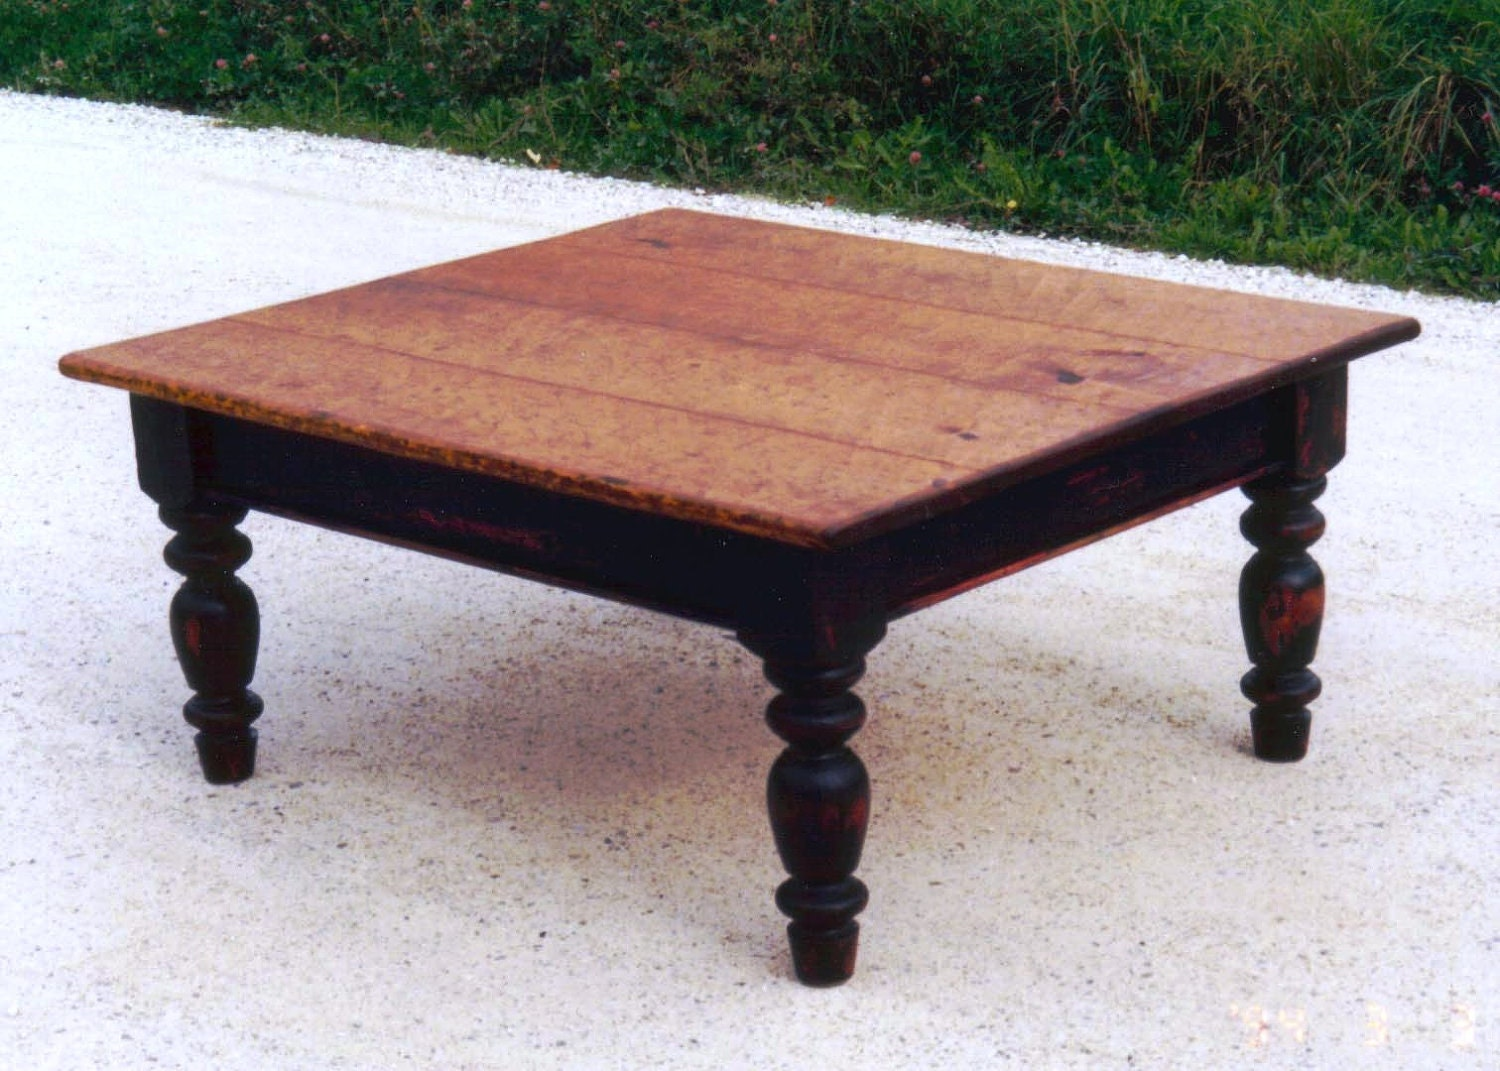 Vermont farmhouse coffee table by FurnaceBrookIron on Etsy